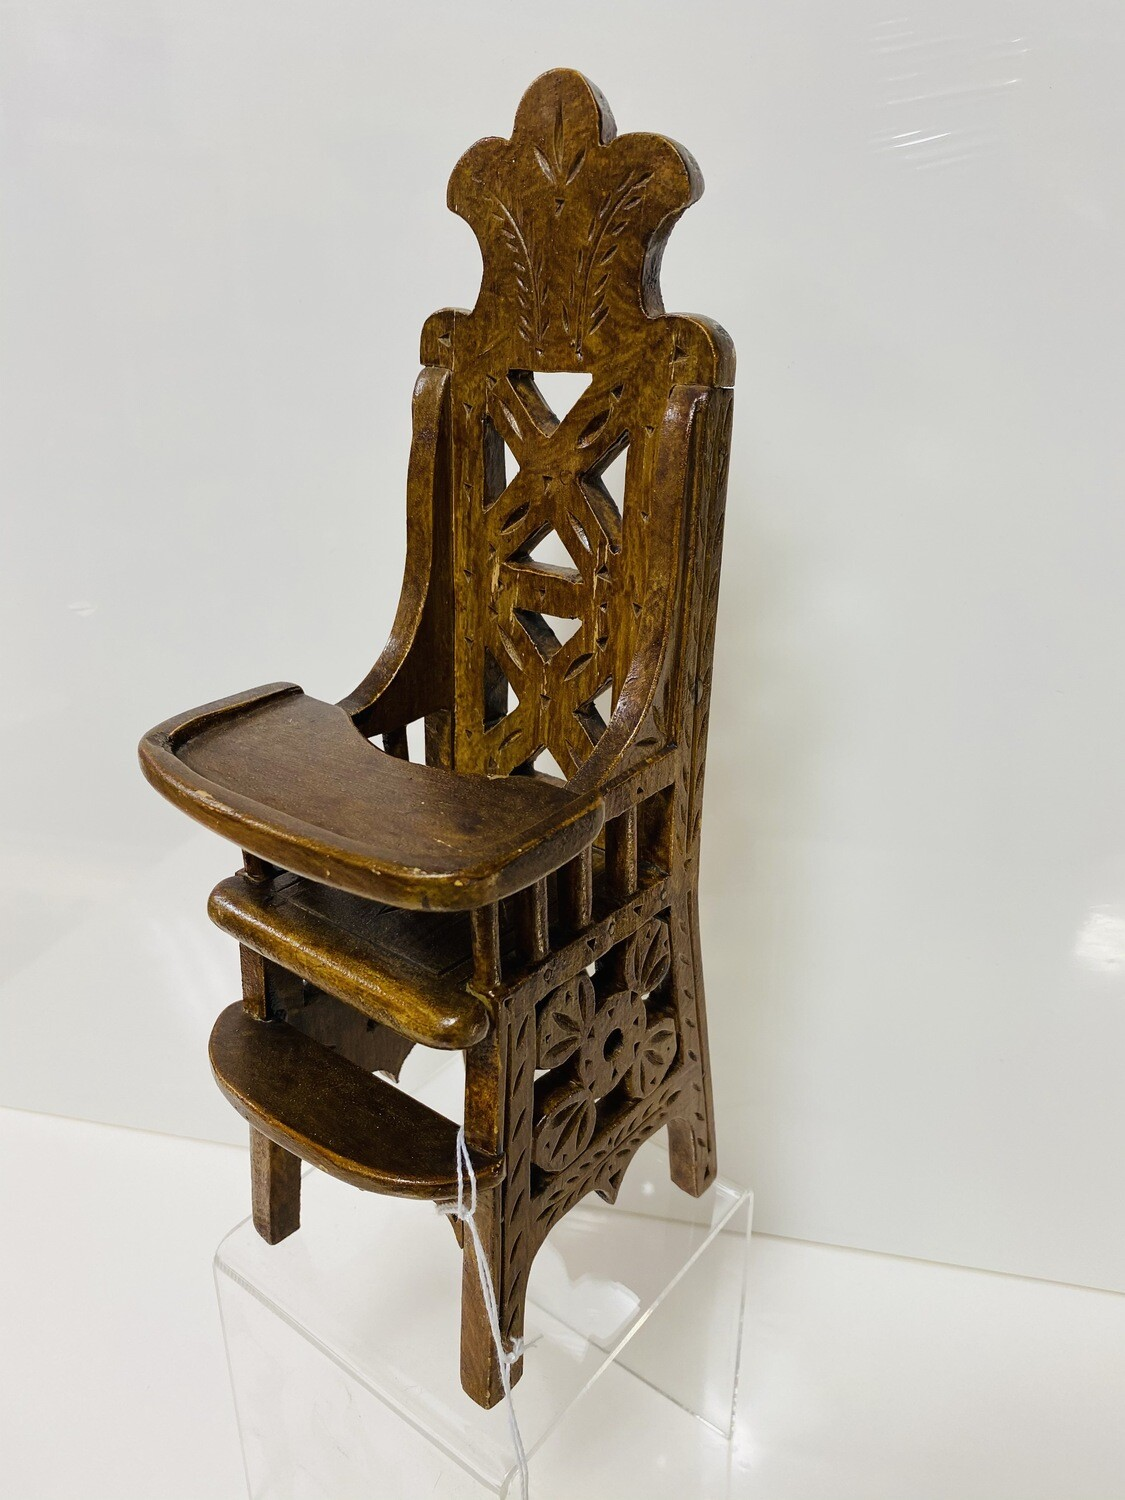 Carved Miniature High Chair Dated 1922 -  Booth V94